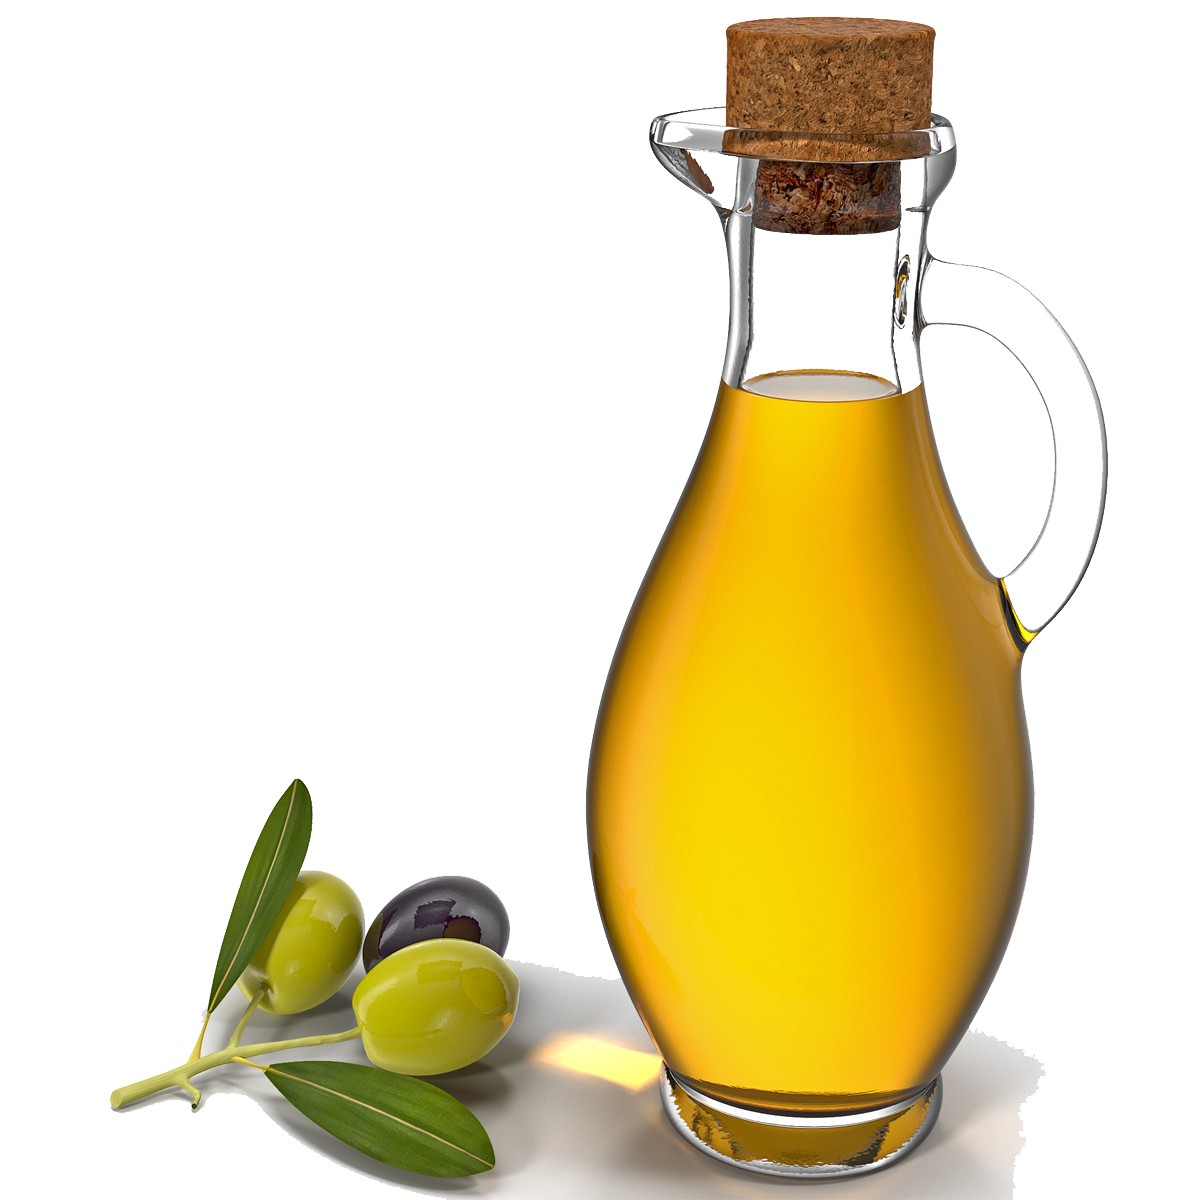 Oil clipart olive oil. Png transparent images all